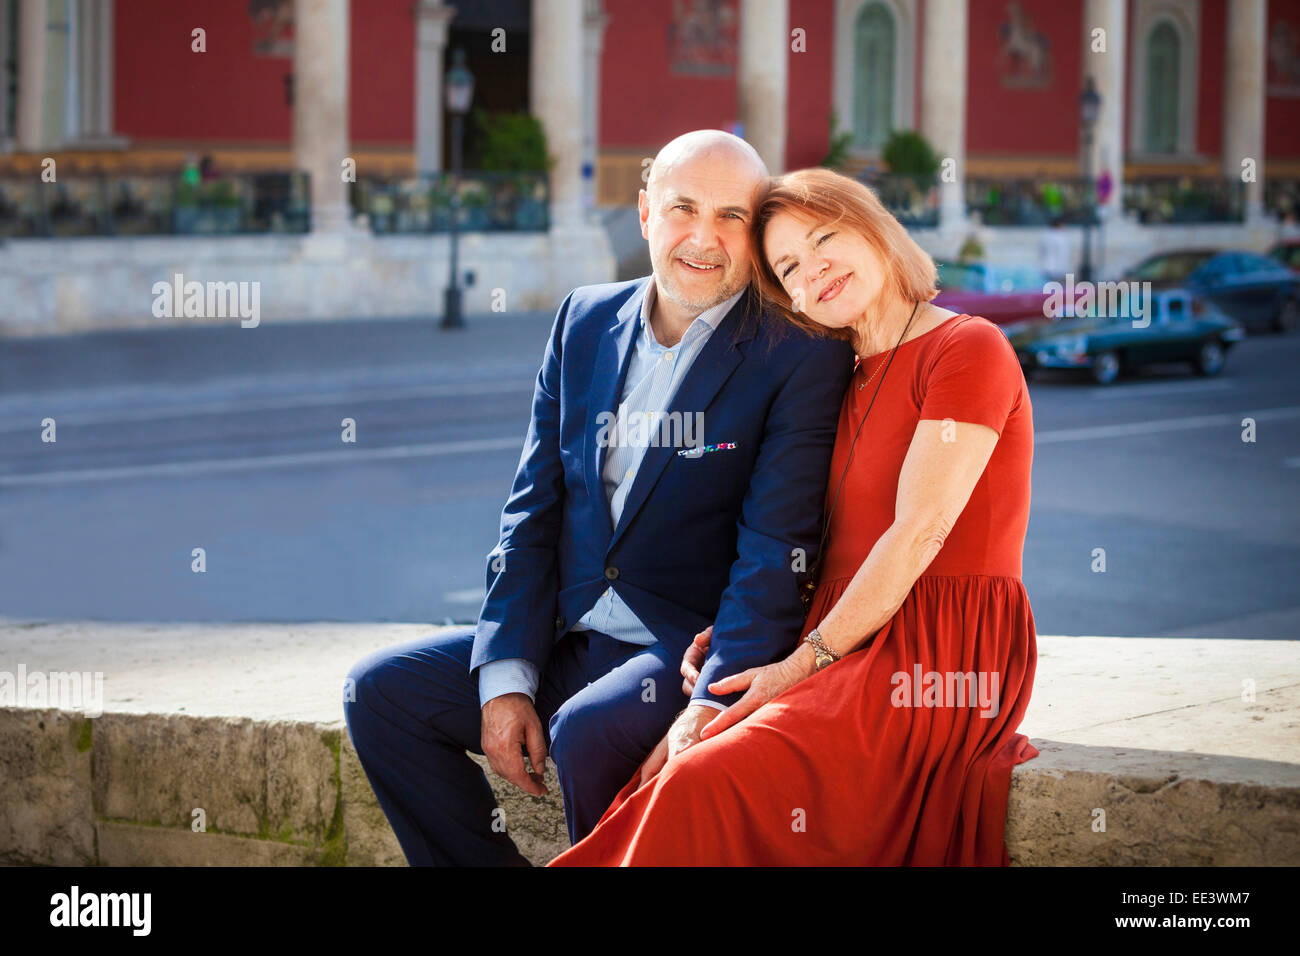 Happy senior couple sitting side by side outdoors, Munich, Bavaria, Germany - Stock Image